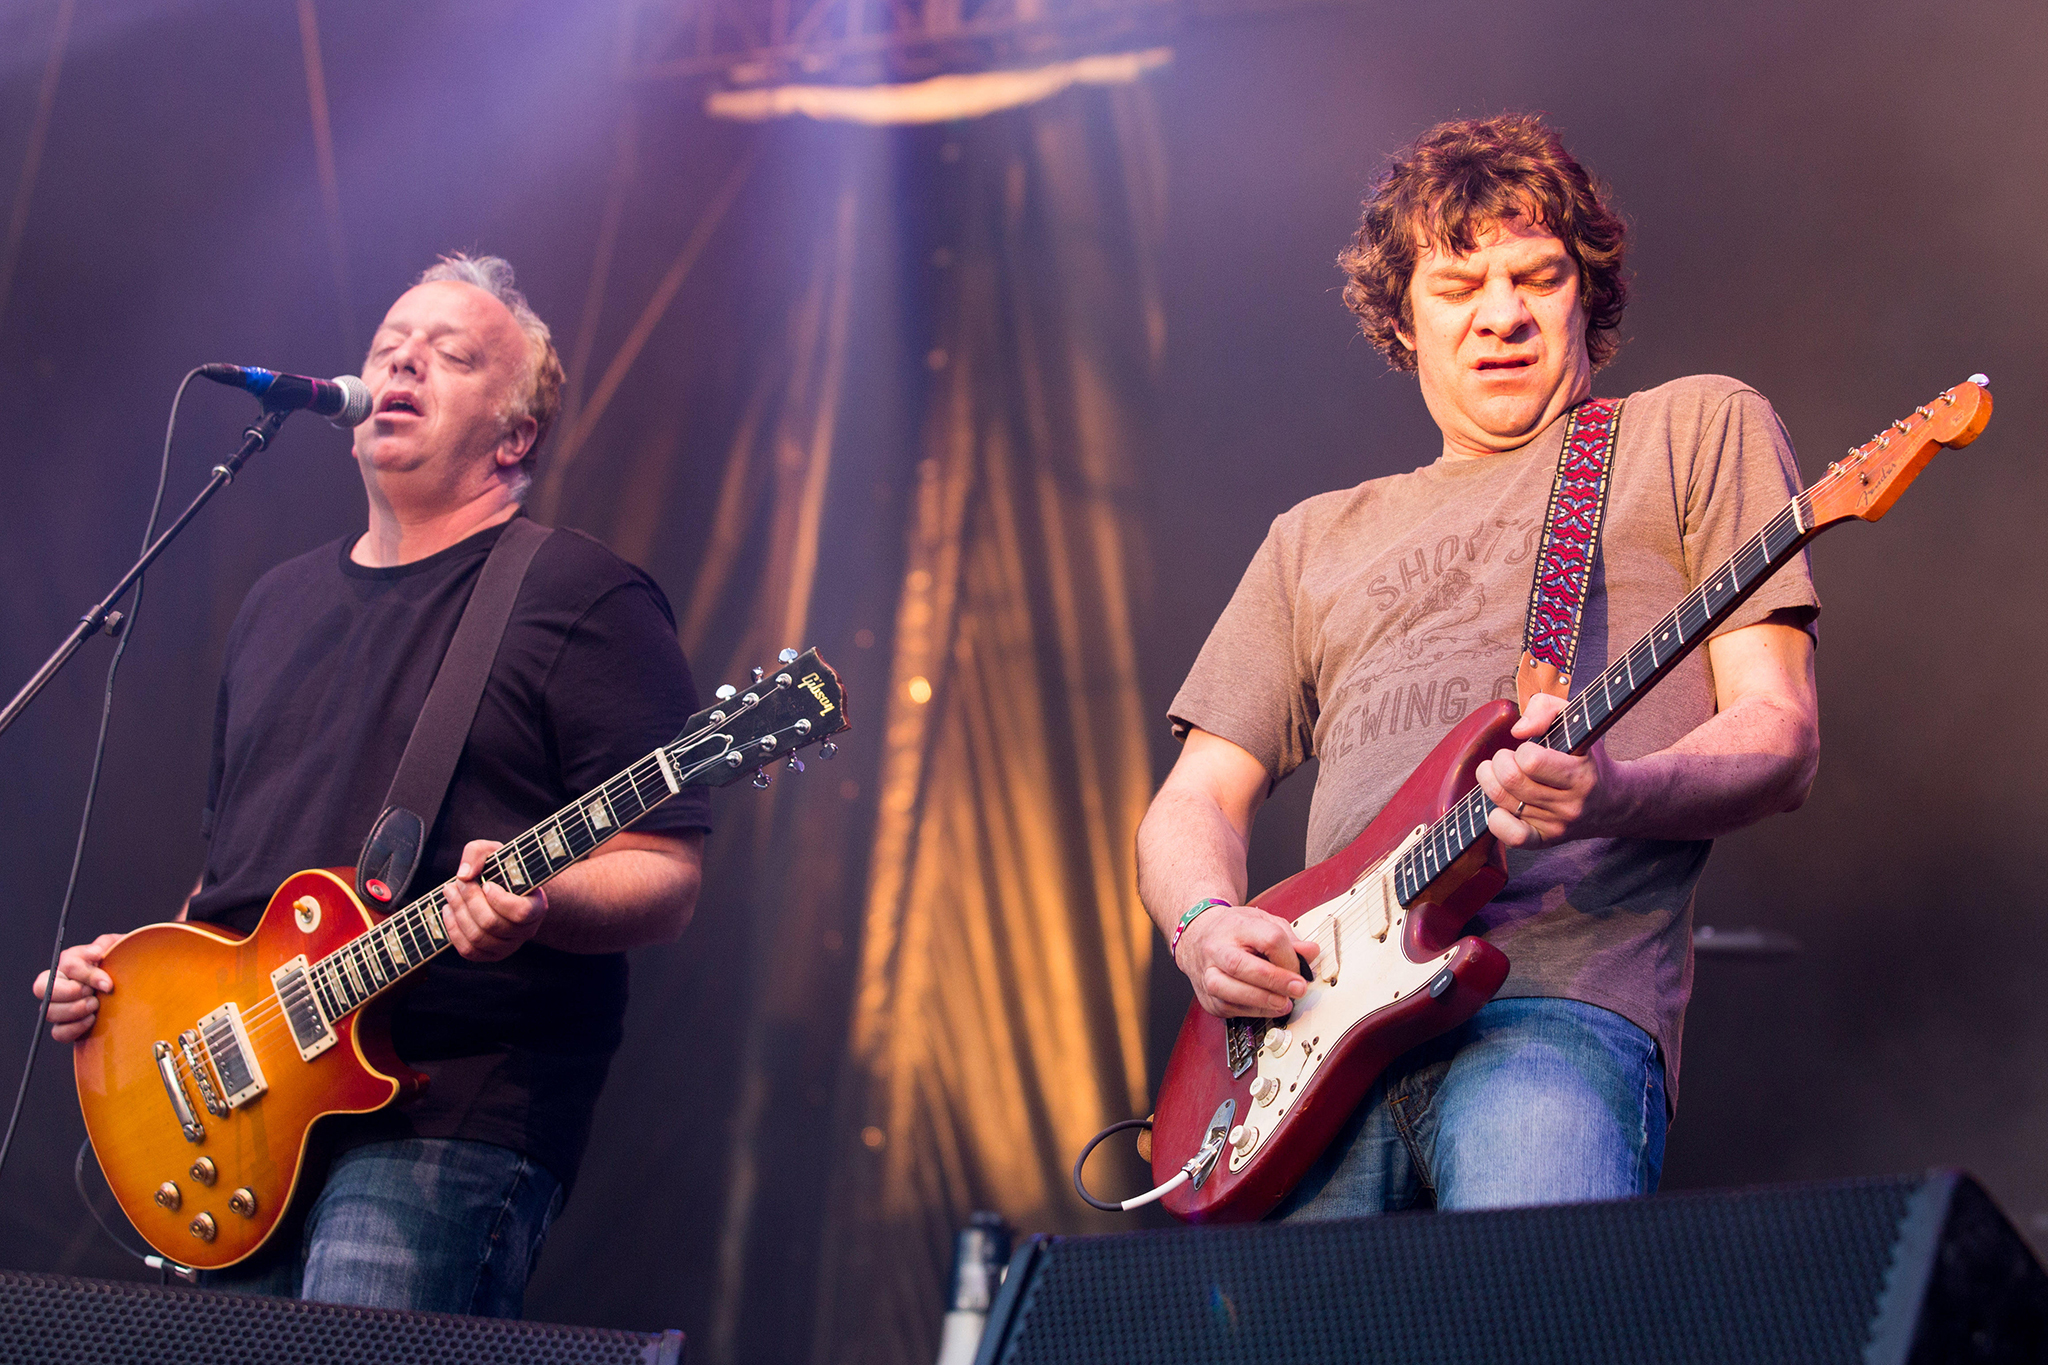 Get to know weirdo rockers Ween